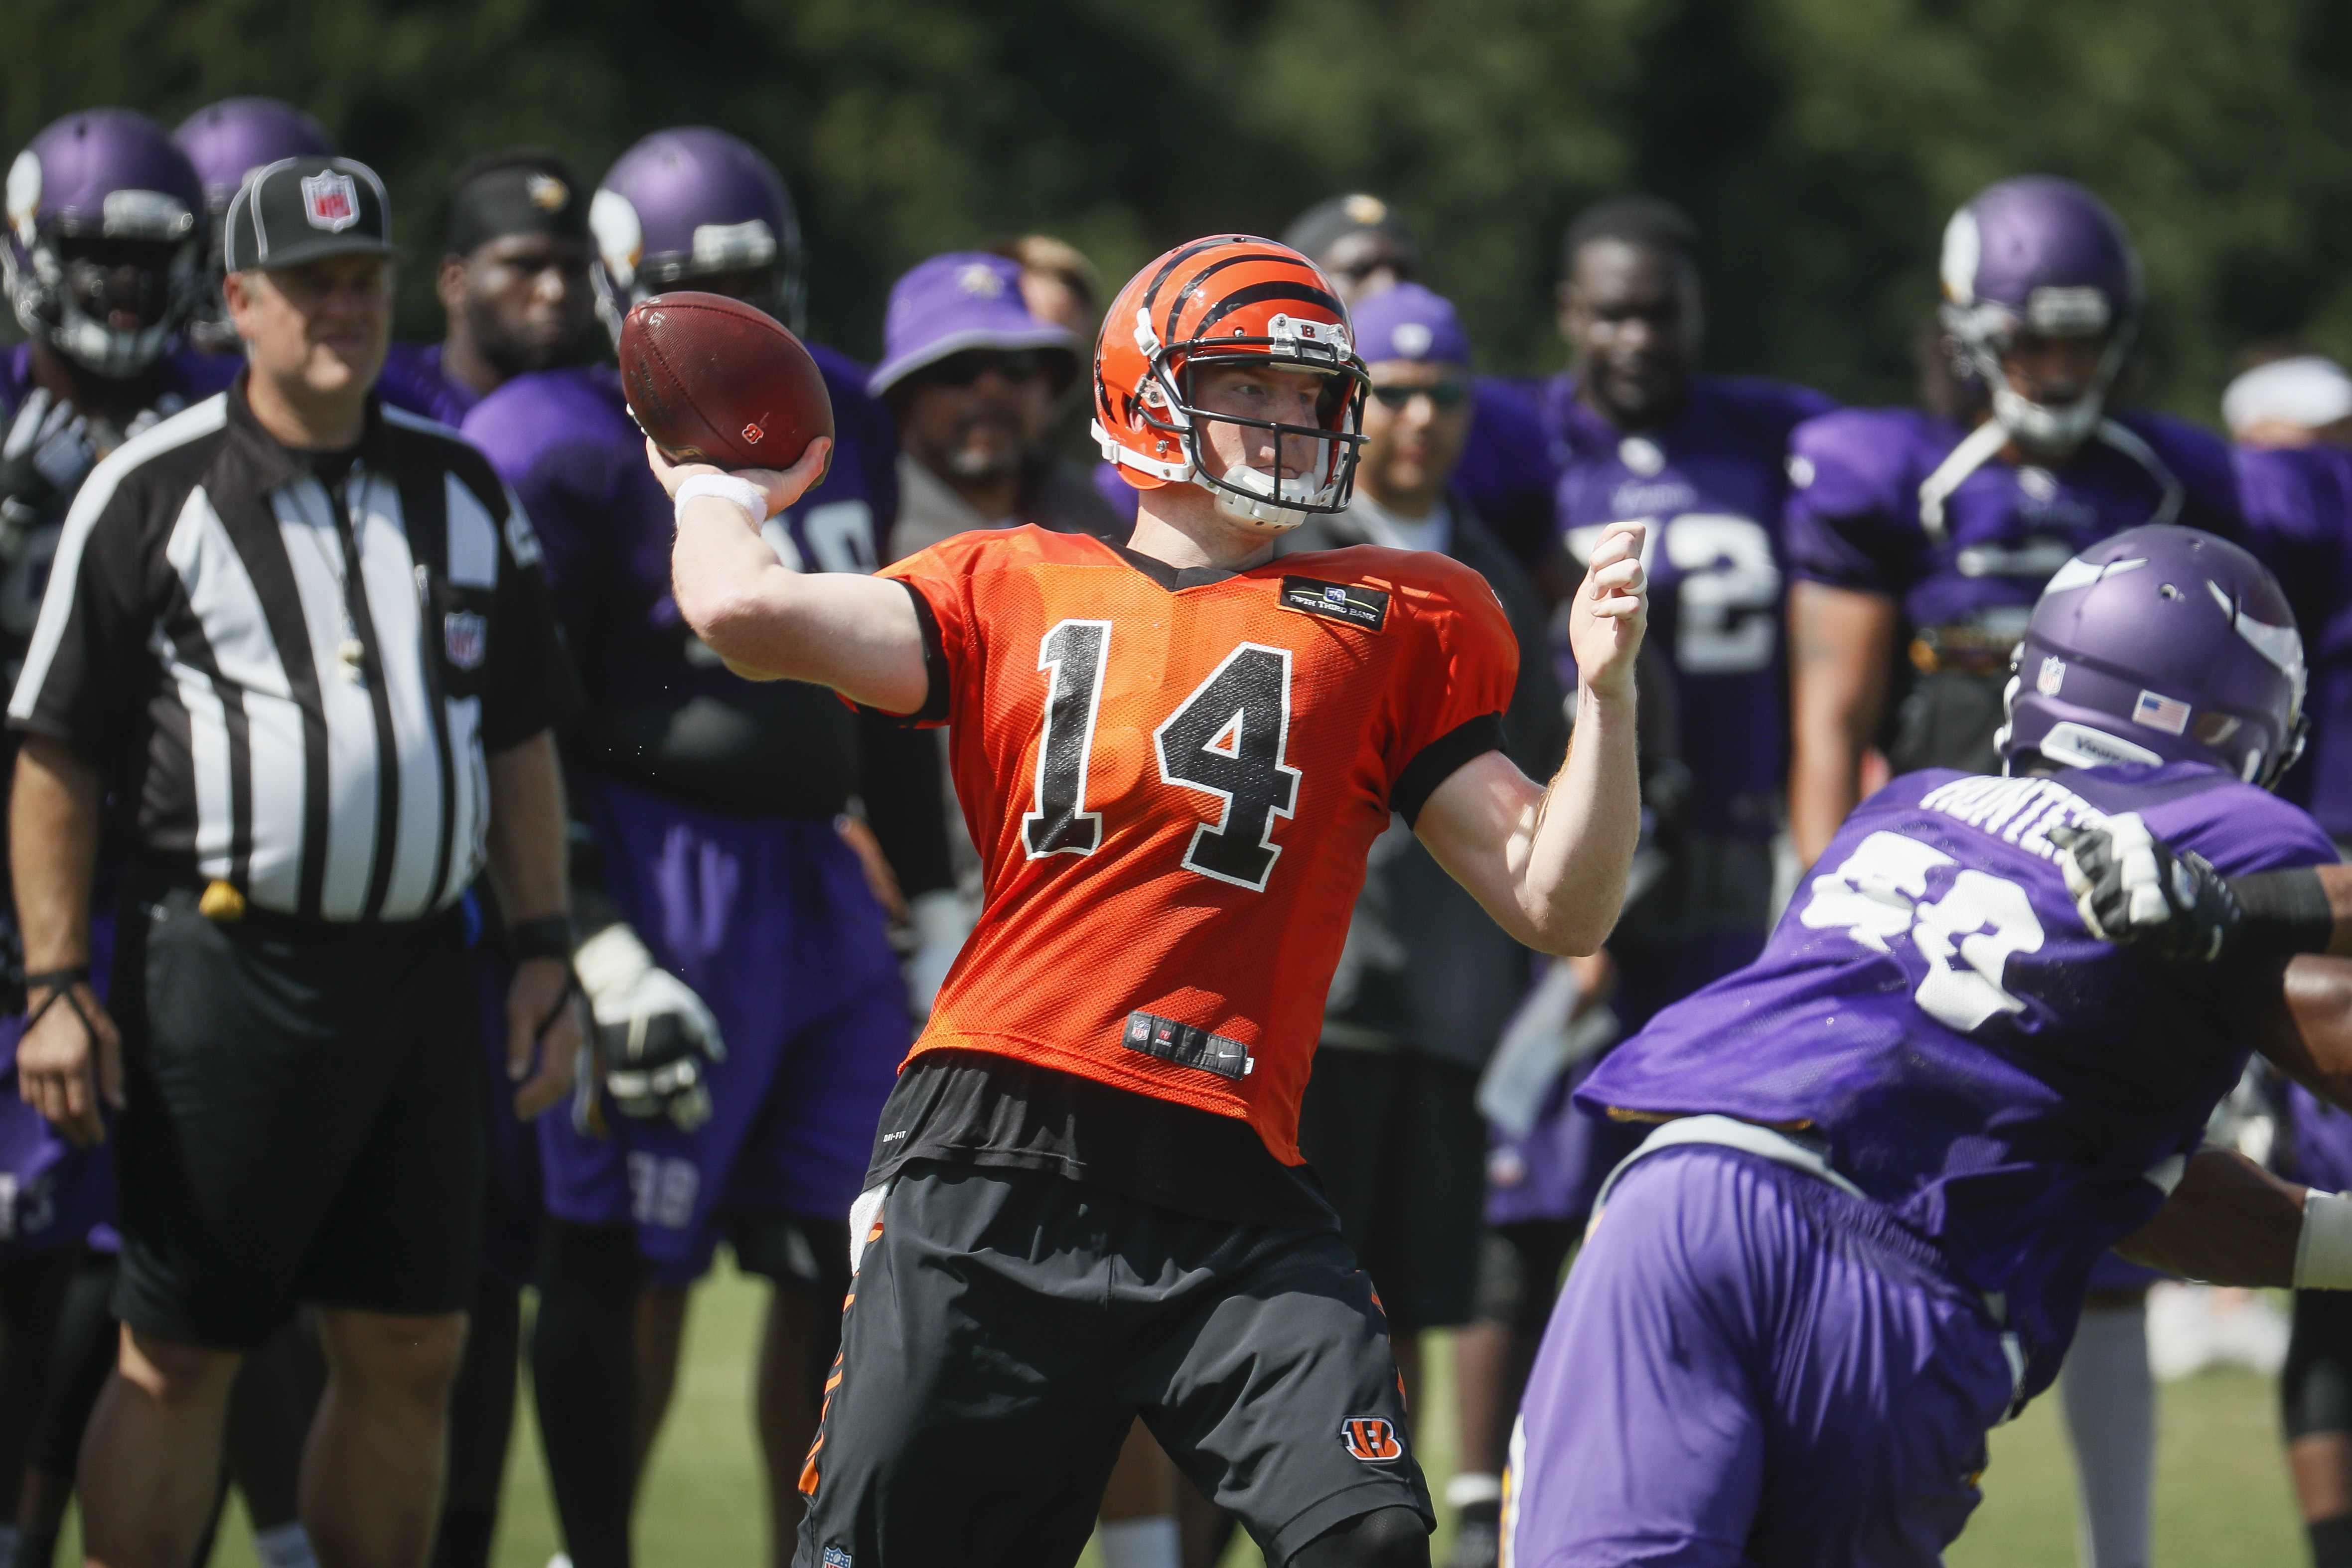 Cincinnati Bengals quarterback Andy Dalton throws during a joint NFL football practice with the Minnesota Vikings, Thursday, Aug. 11, 2016, in Cincinnati. (AP Photo/John Minchillo)